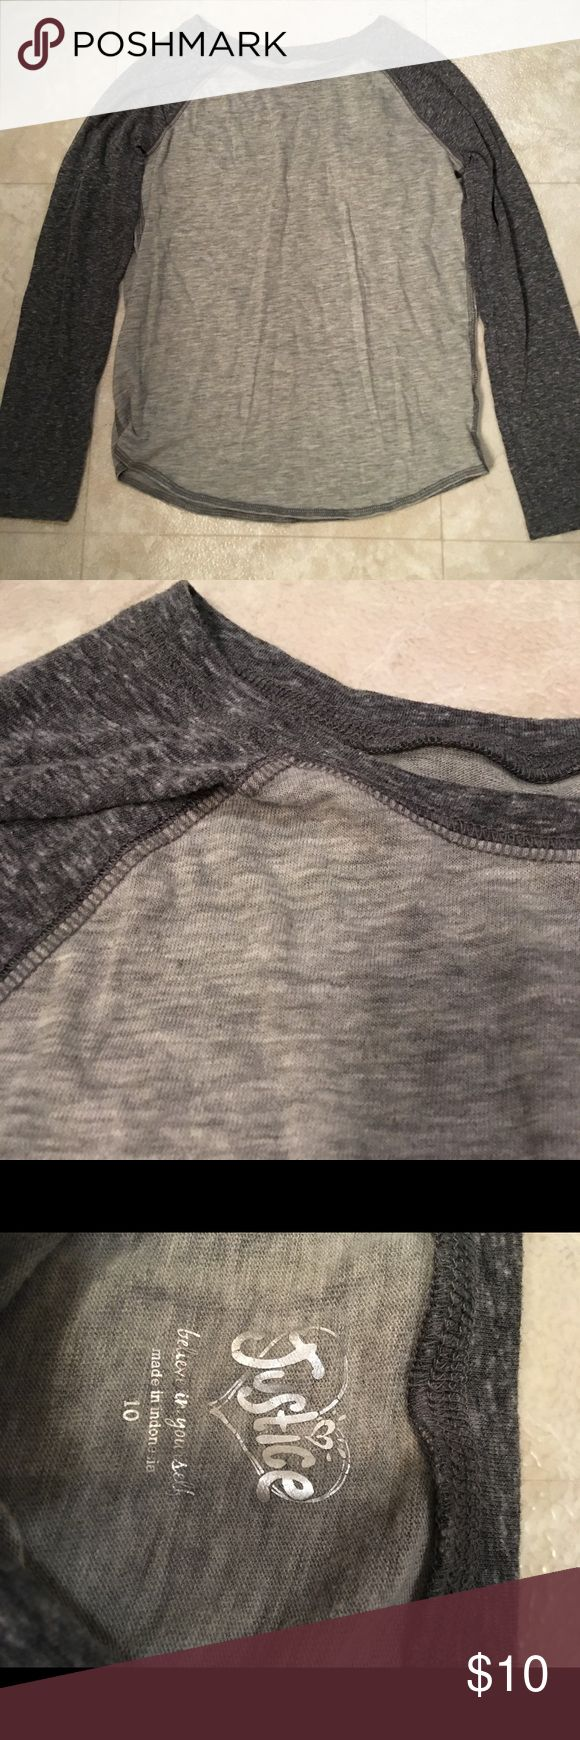 Girls Justice long sleeve T-Shirt Girls Justice shirt, charcoal gray color very soft material. Used but very little. No picks, tears, or stains. Great condition! Justice Shirts & Tops Tees - Long Sleeve